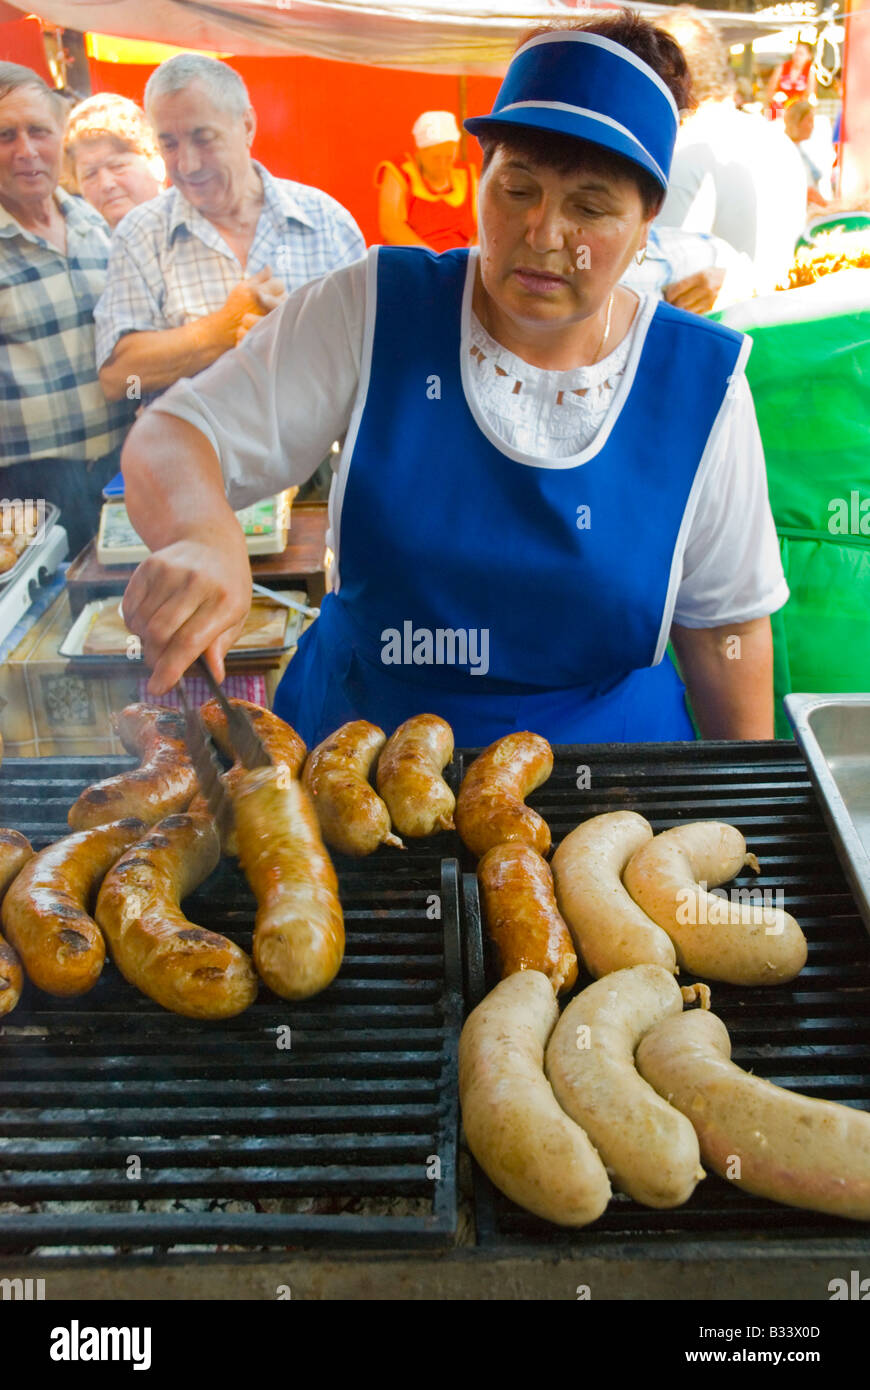 Grilling sausages at Piata Centrala marketplace in Chisinau Moldova Europe - Stock Image